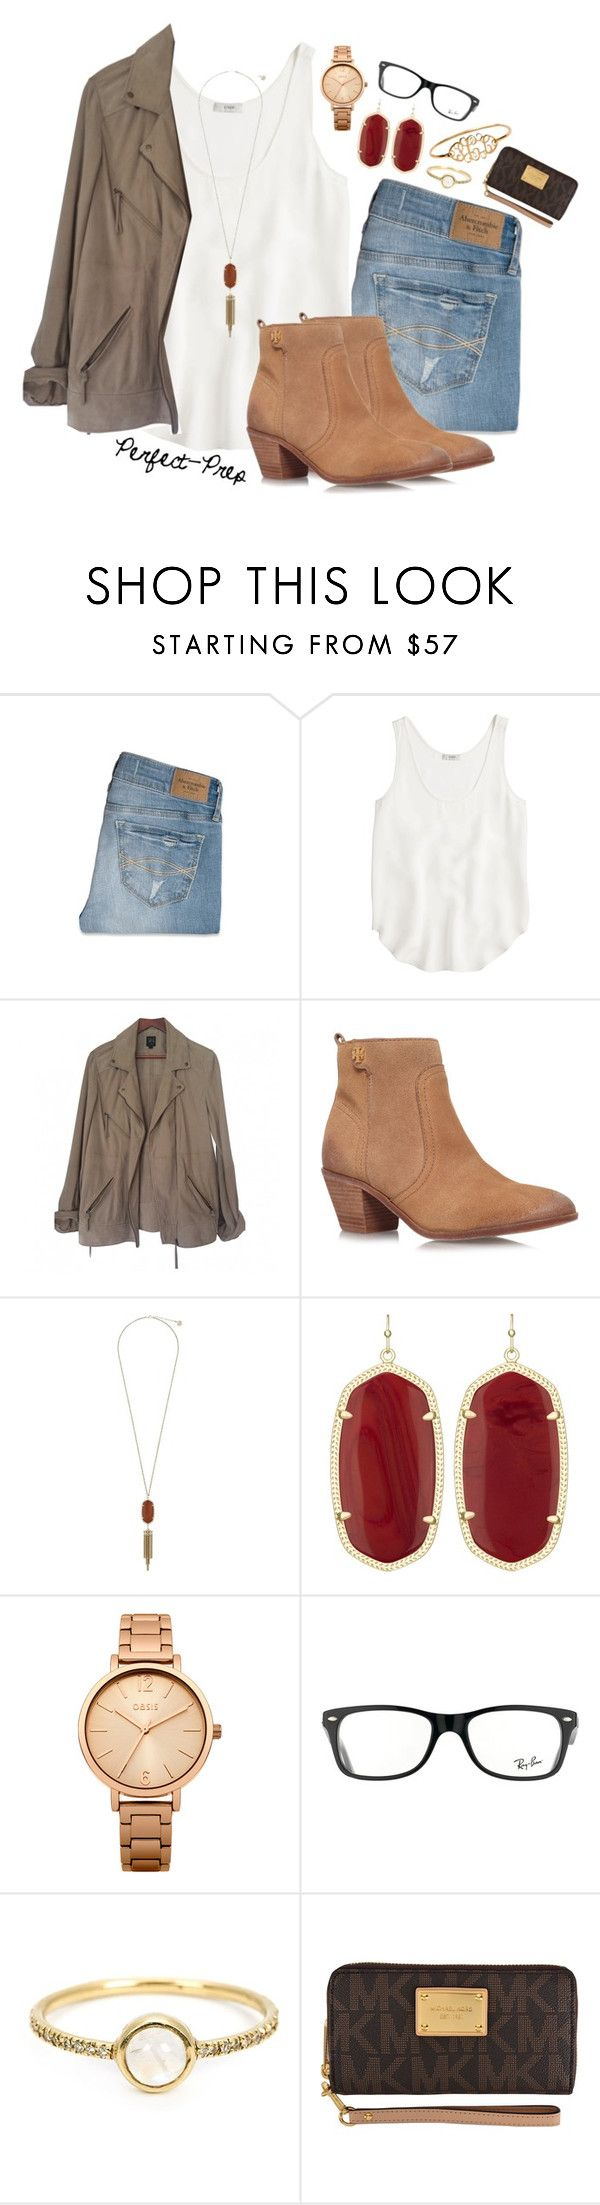 """""""Casually Preppy"""" by perfectgabby ❤ liked on Polyvore featuring Abercrombie & Fitch, J.Crew, SWILDENS, Tory Burch, Kendra Scott, Oasis, Ray-Ban, Irene Neuwirth, MICHAEL Michael Kors and women's clothing"""